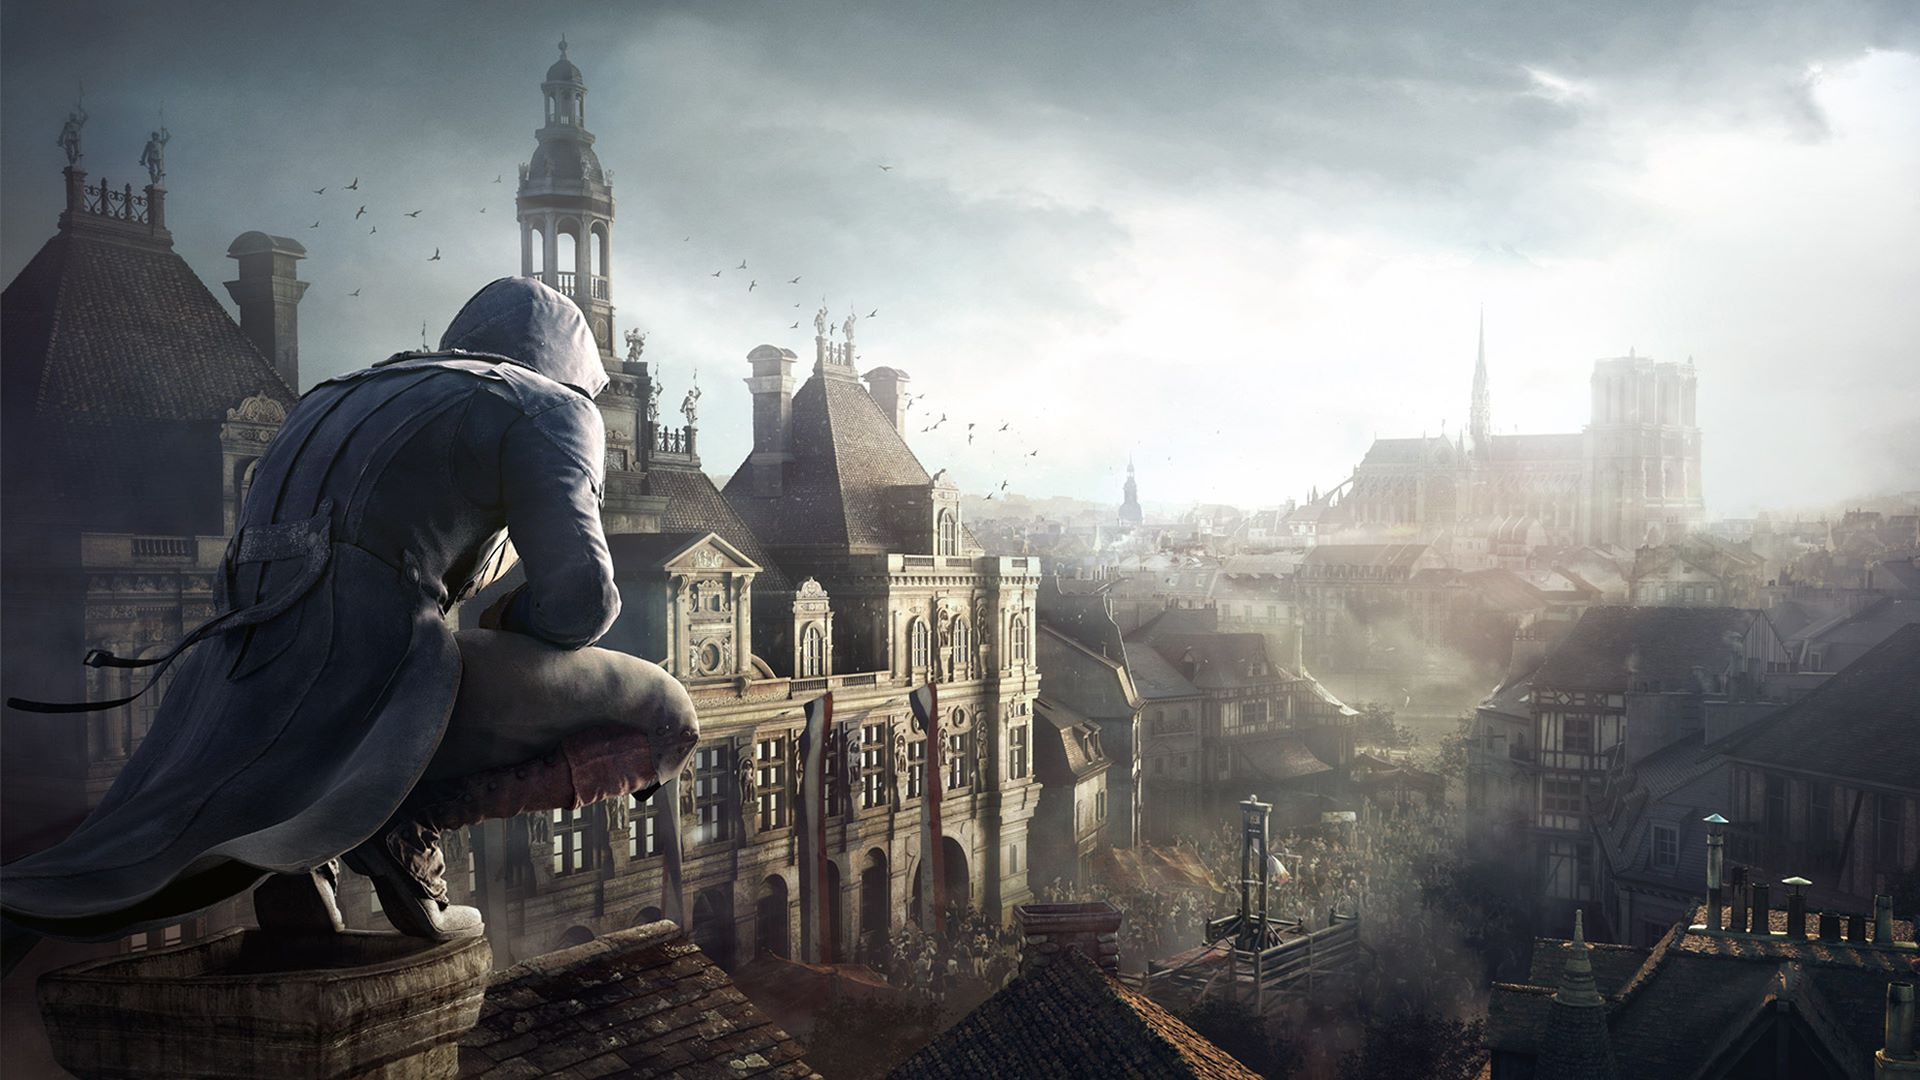 Ubisoft offers Assassin's Creed Unity for free so you can see Notre